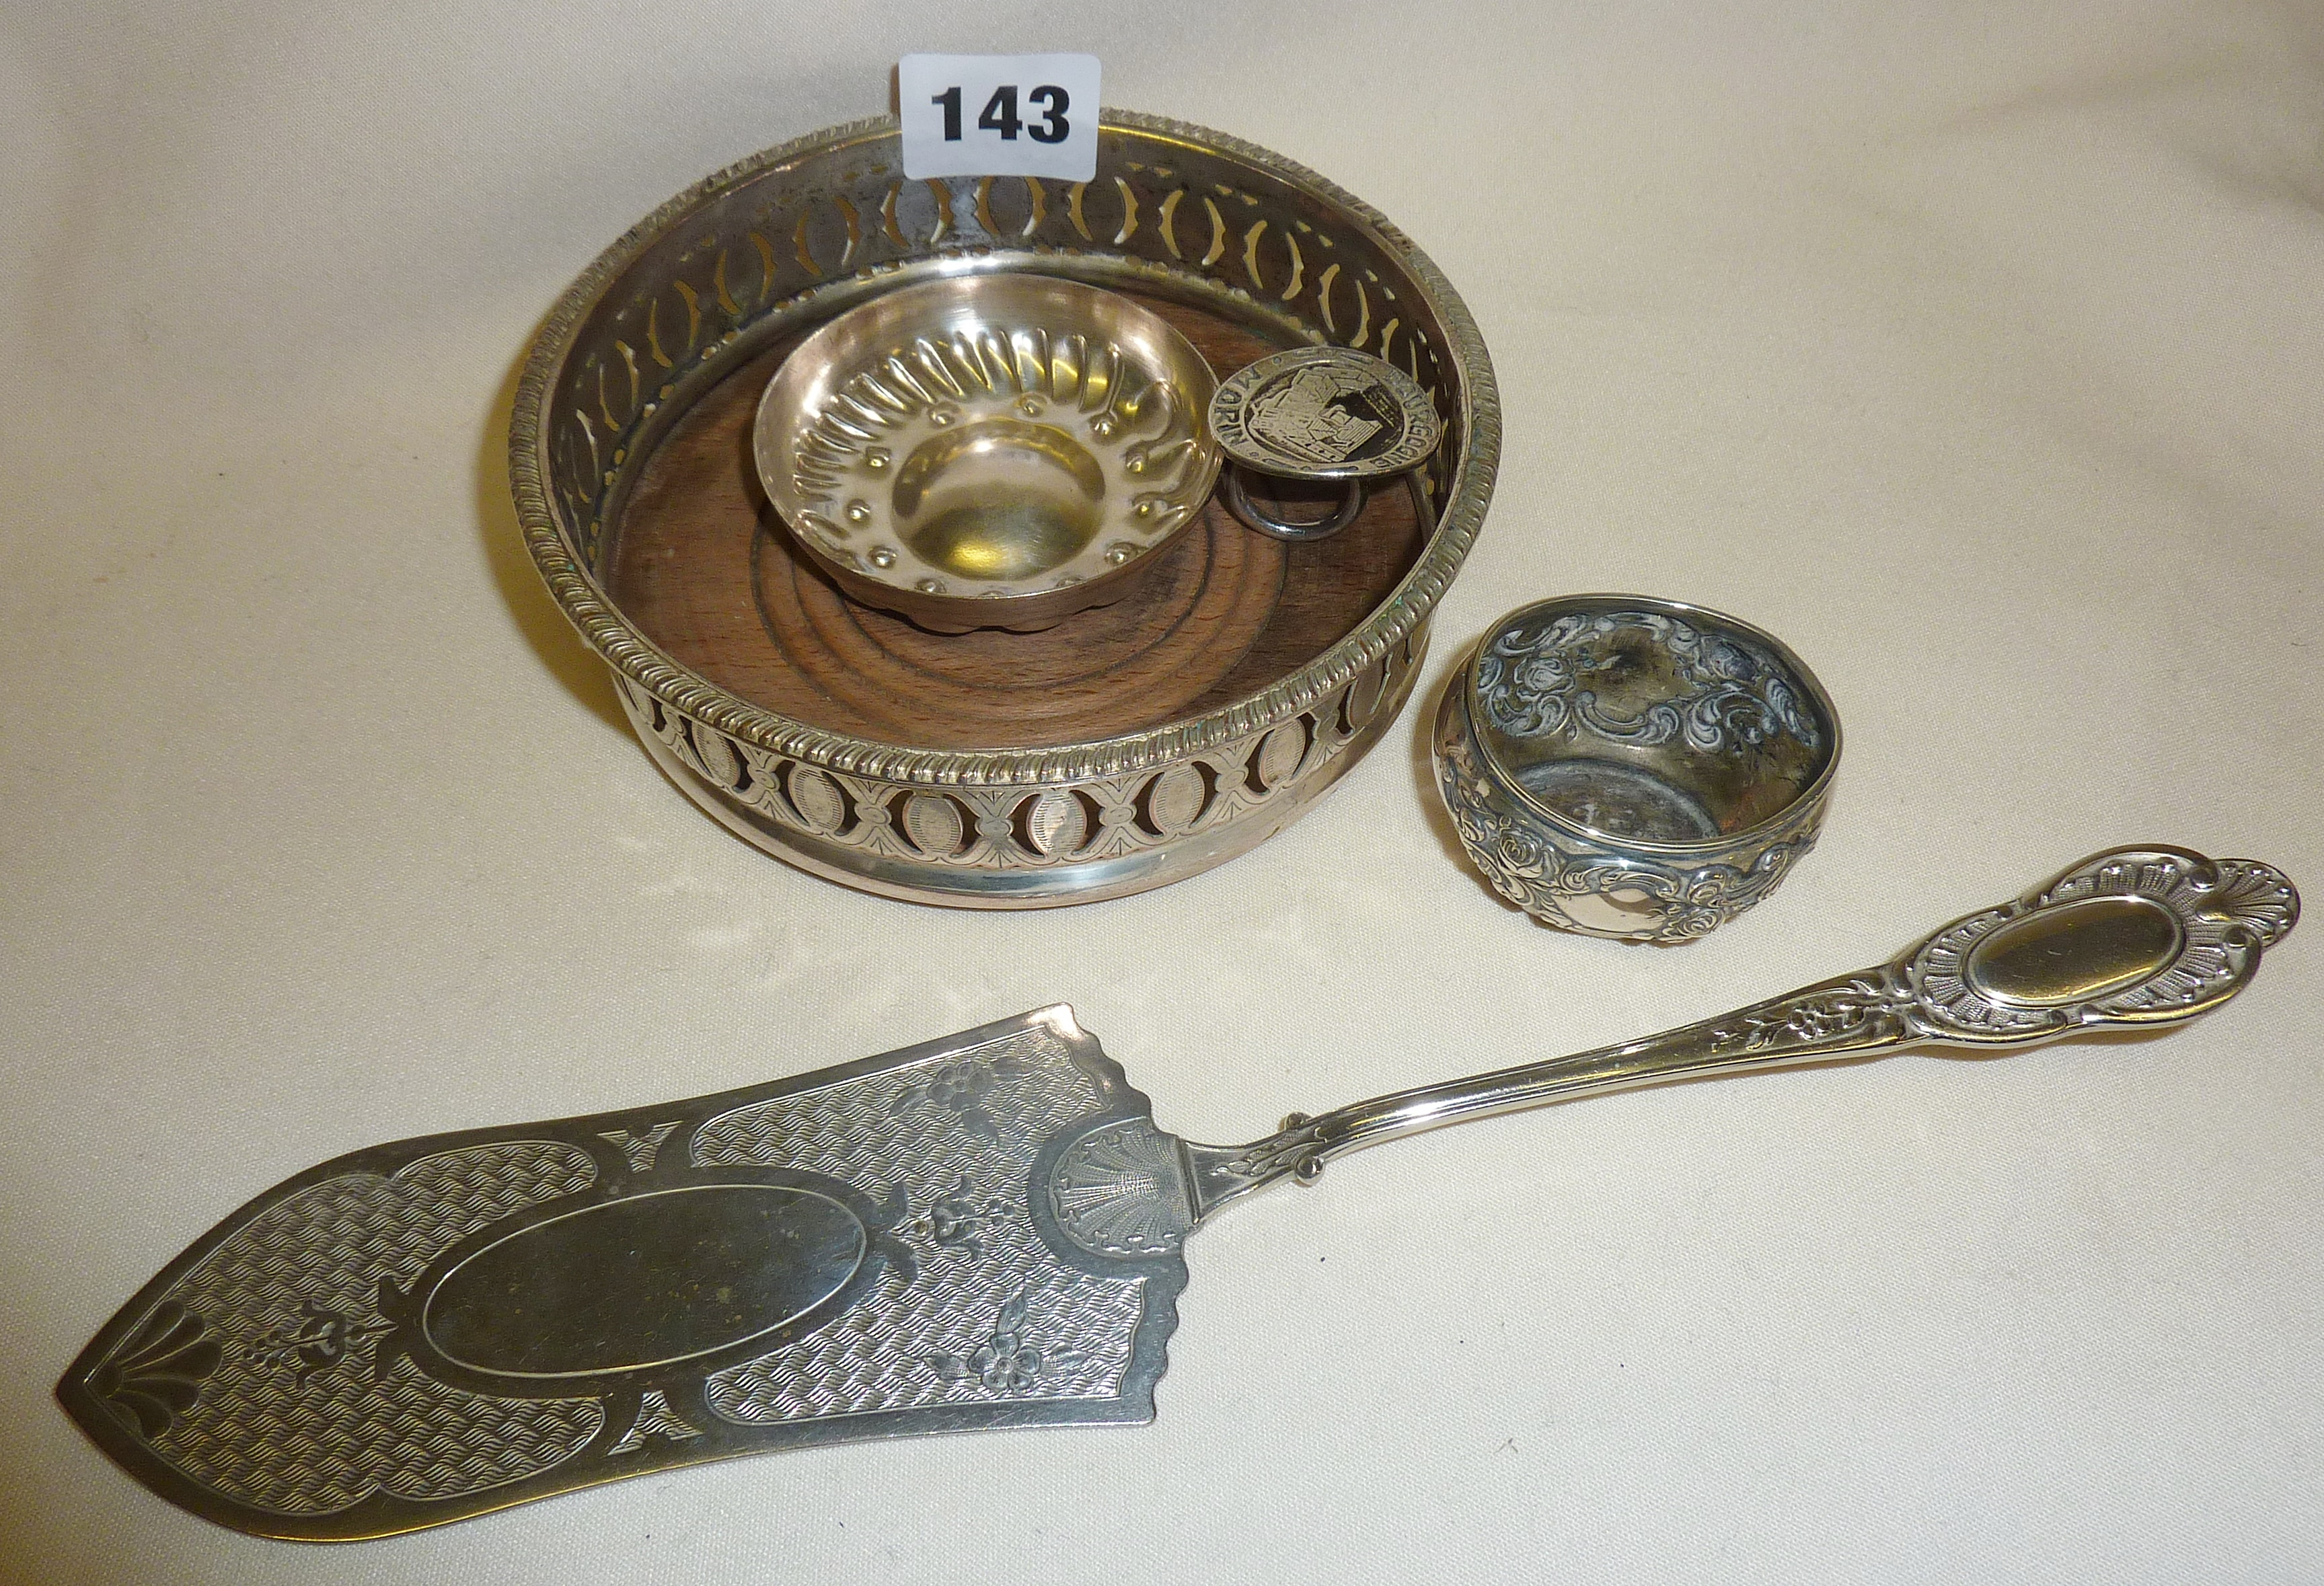 Silver plated wine taster, coaster and cake slice with a hallmarked silver salt pot